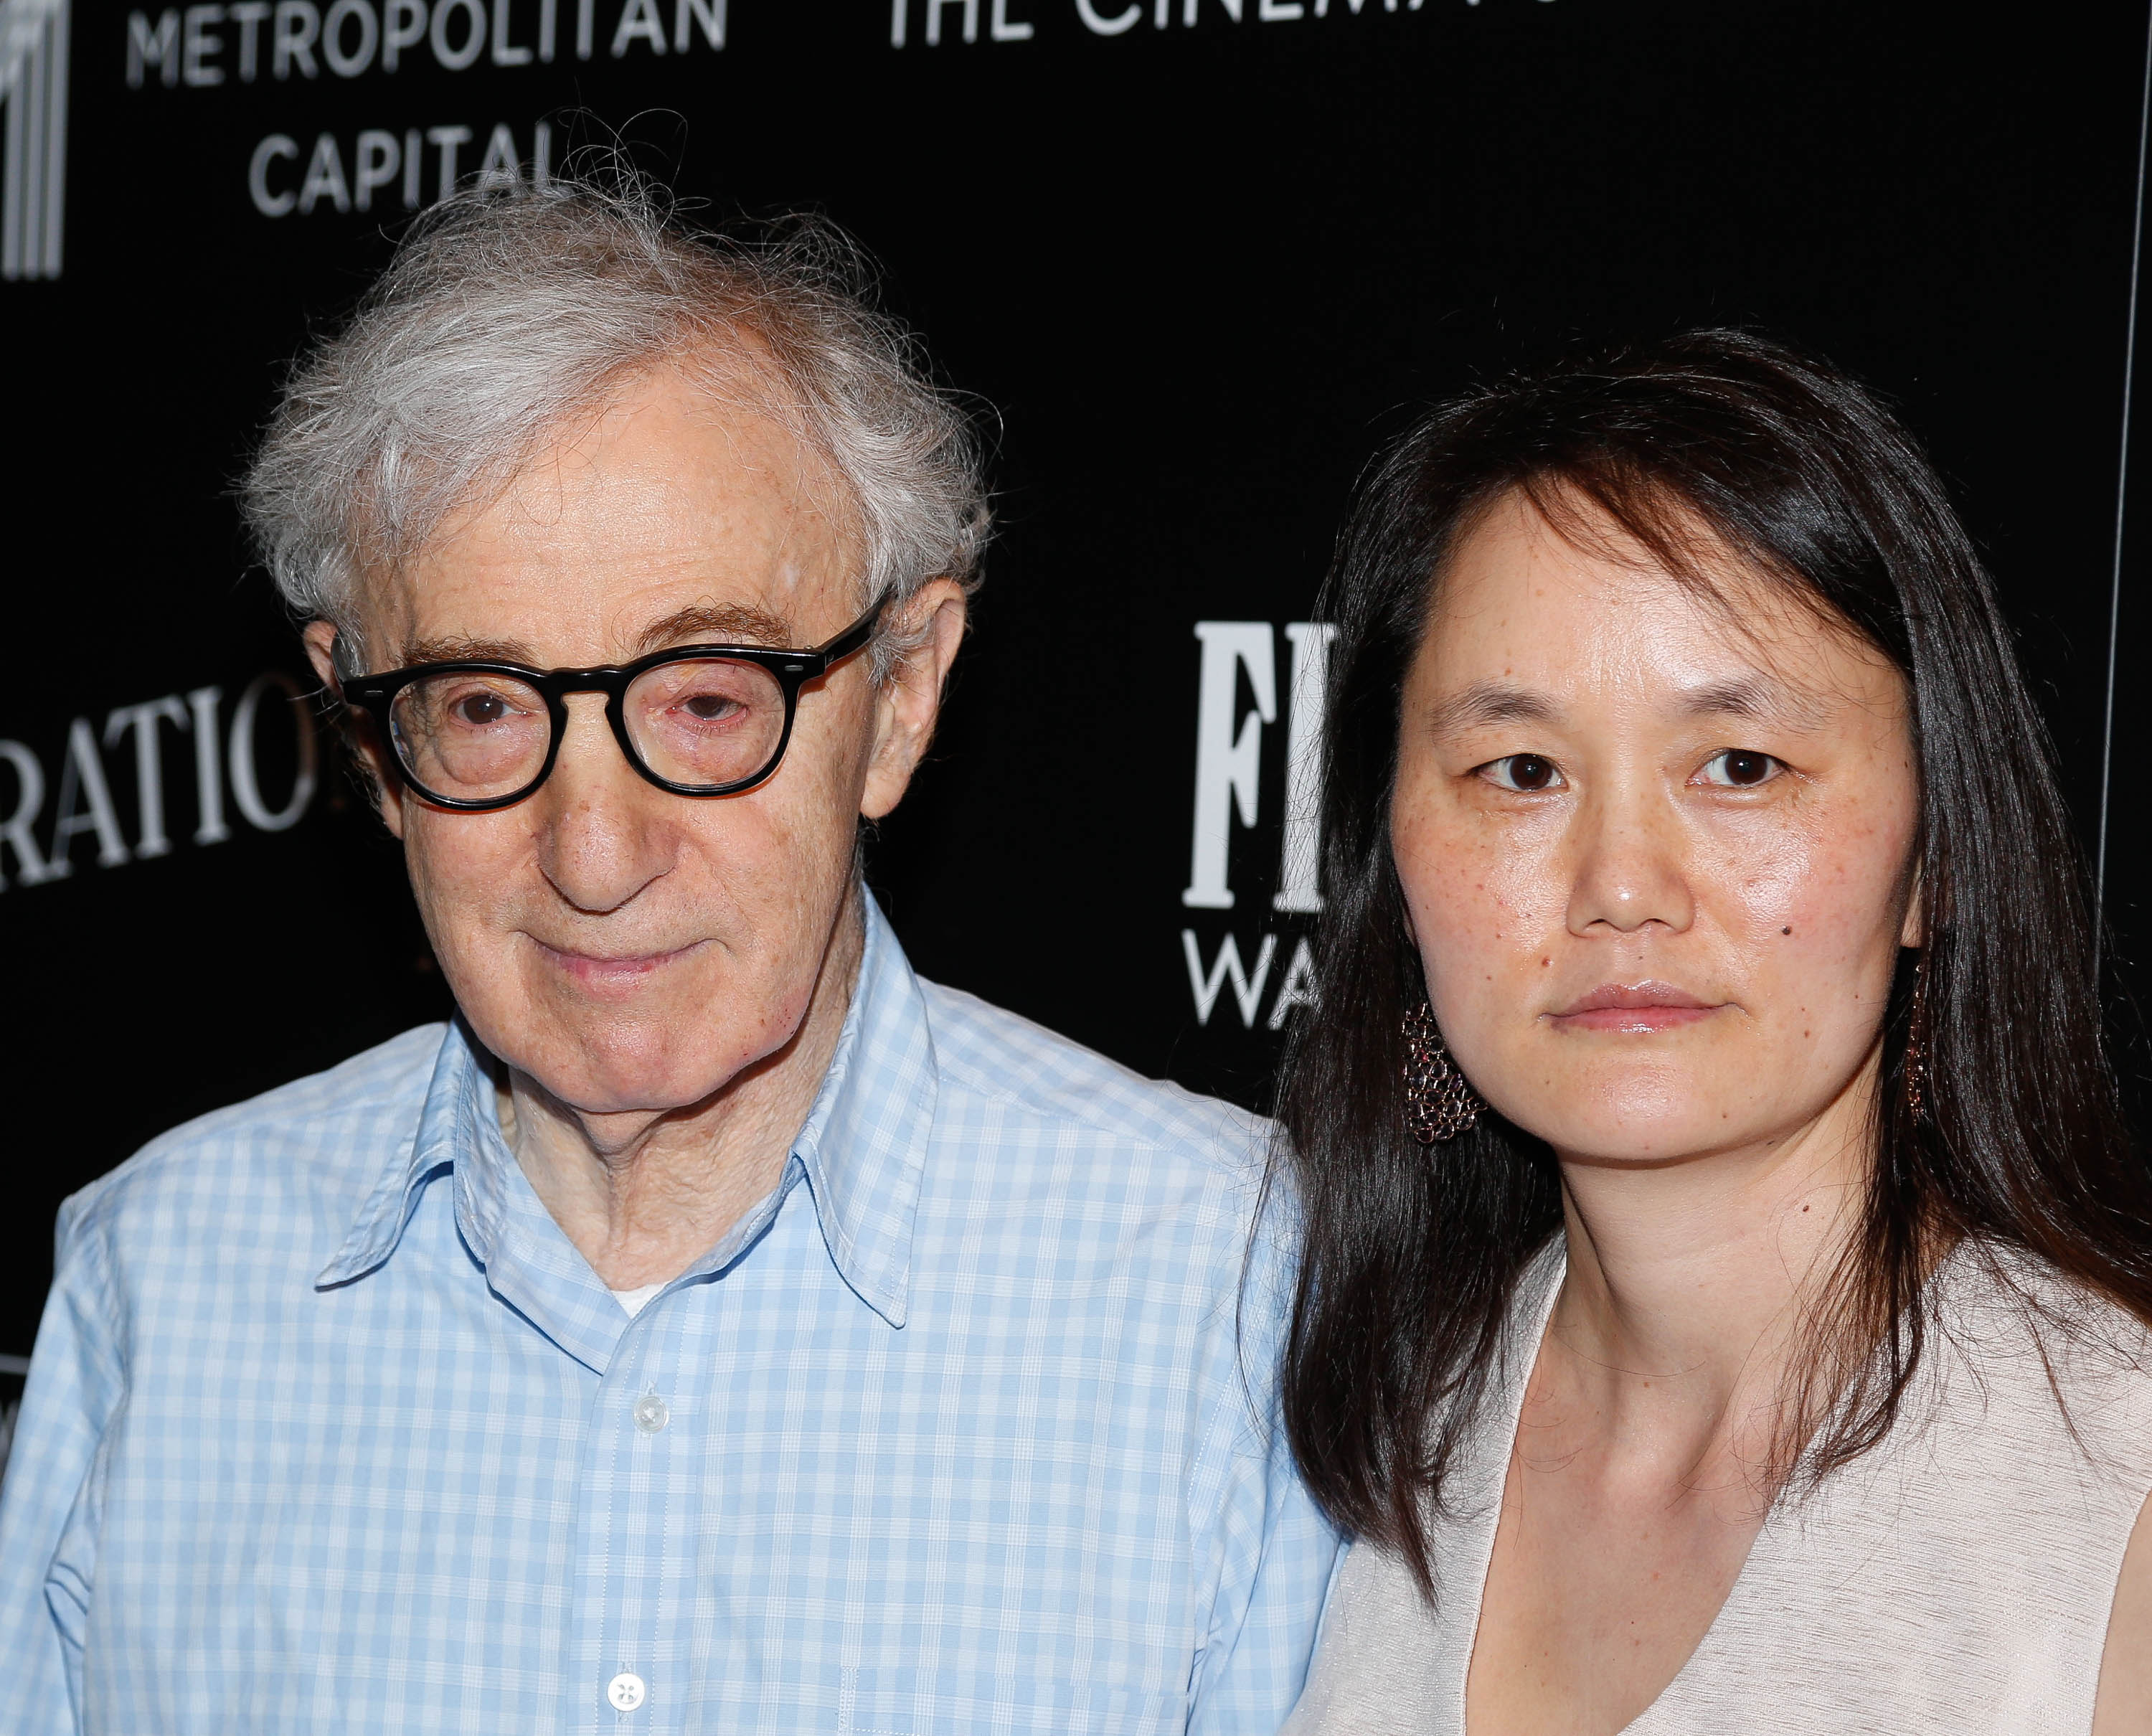 Woody Allen (L) and Soon-Yi Previn attend Sony Pictures Classics  Irrational Man  premiere hosted by Fiji Water, Metropolitan Capital Bank and The Cinema Society in New York City on July 15, 2015.